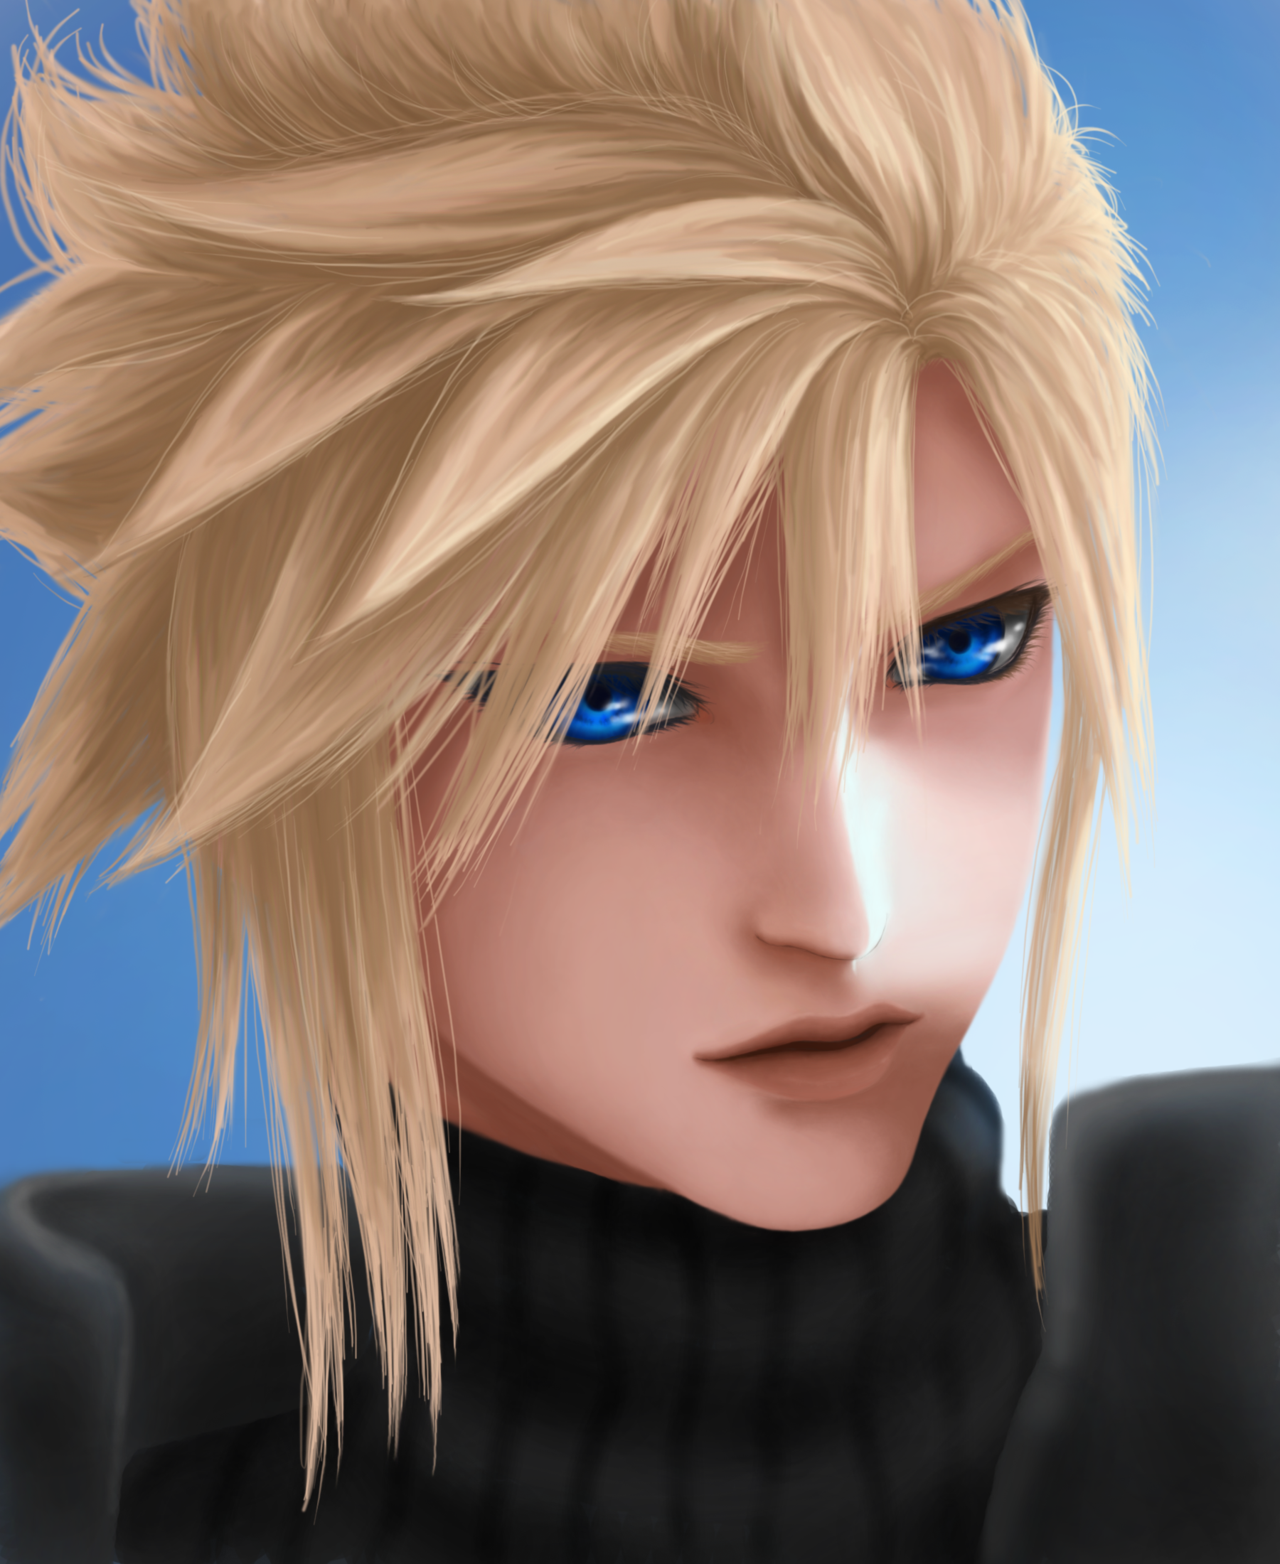 Blue And Yellow Final Fantasy Cloud Strife Cloud Strife Final Fantasy Vii Cloud